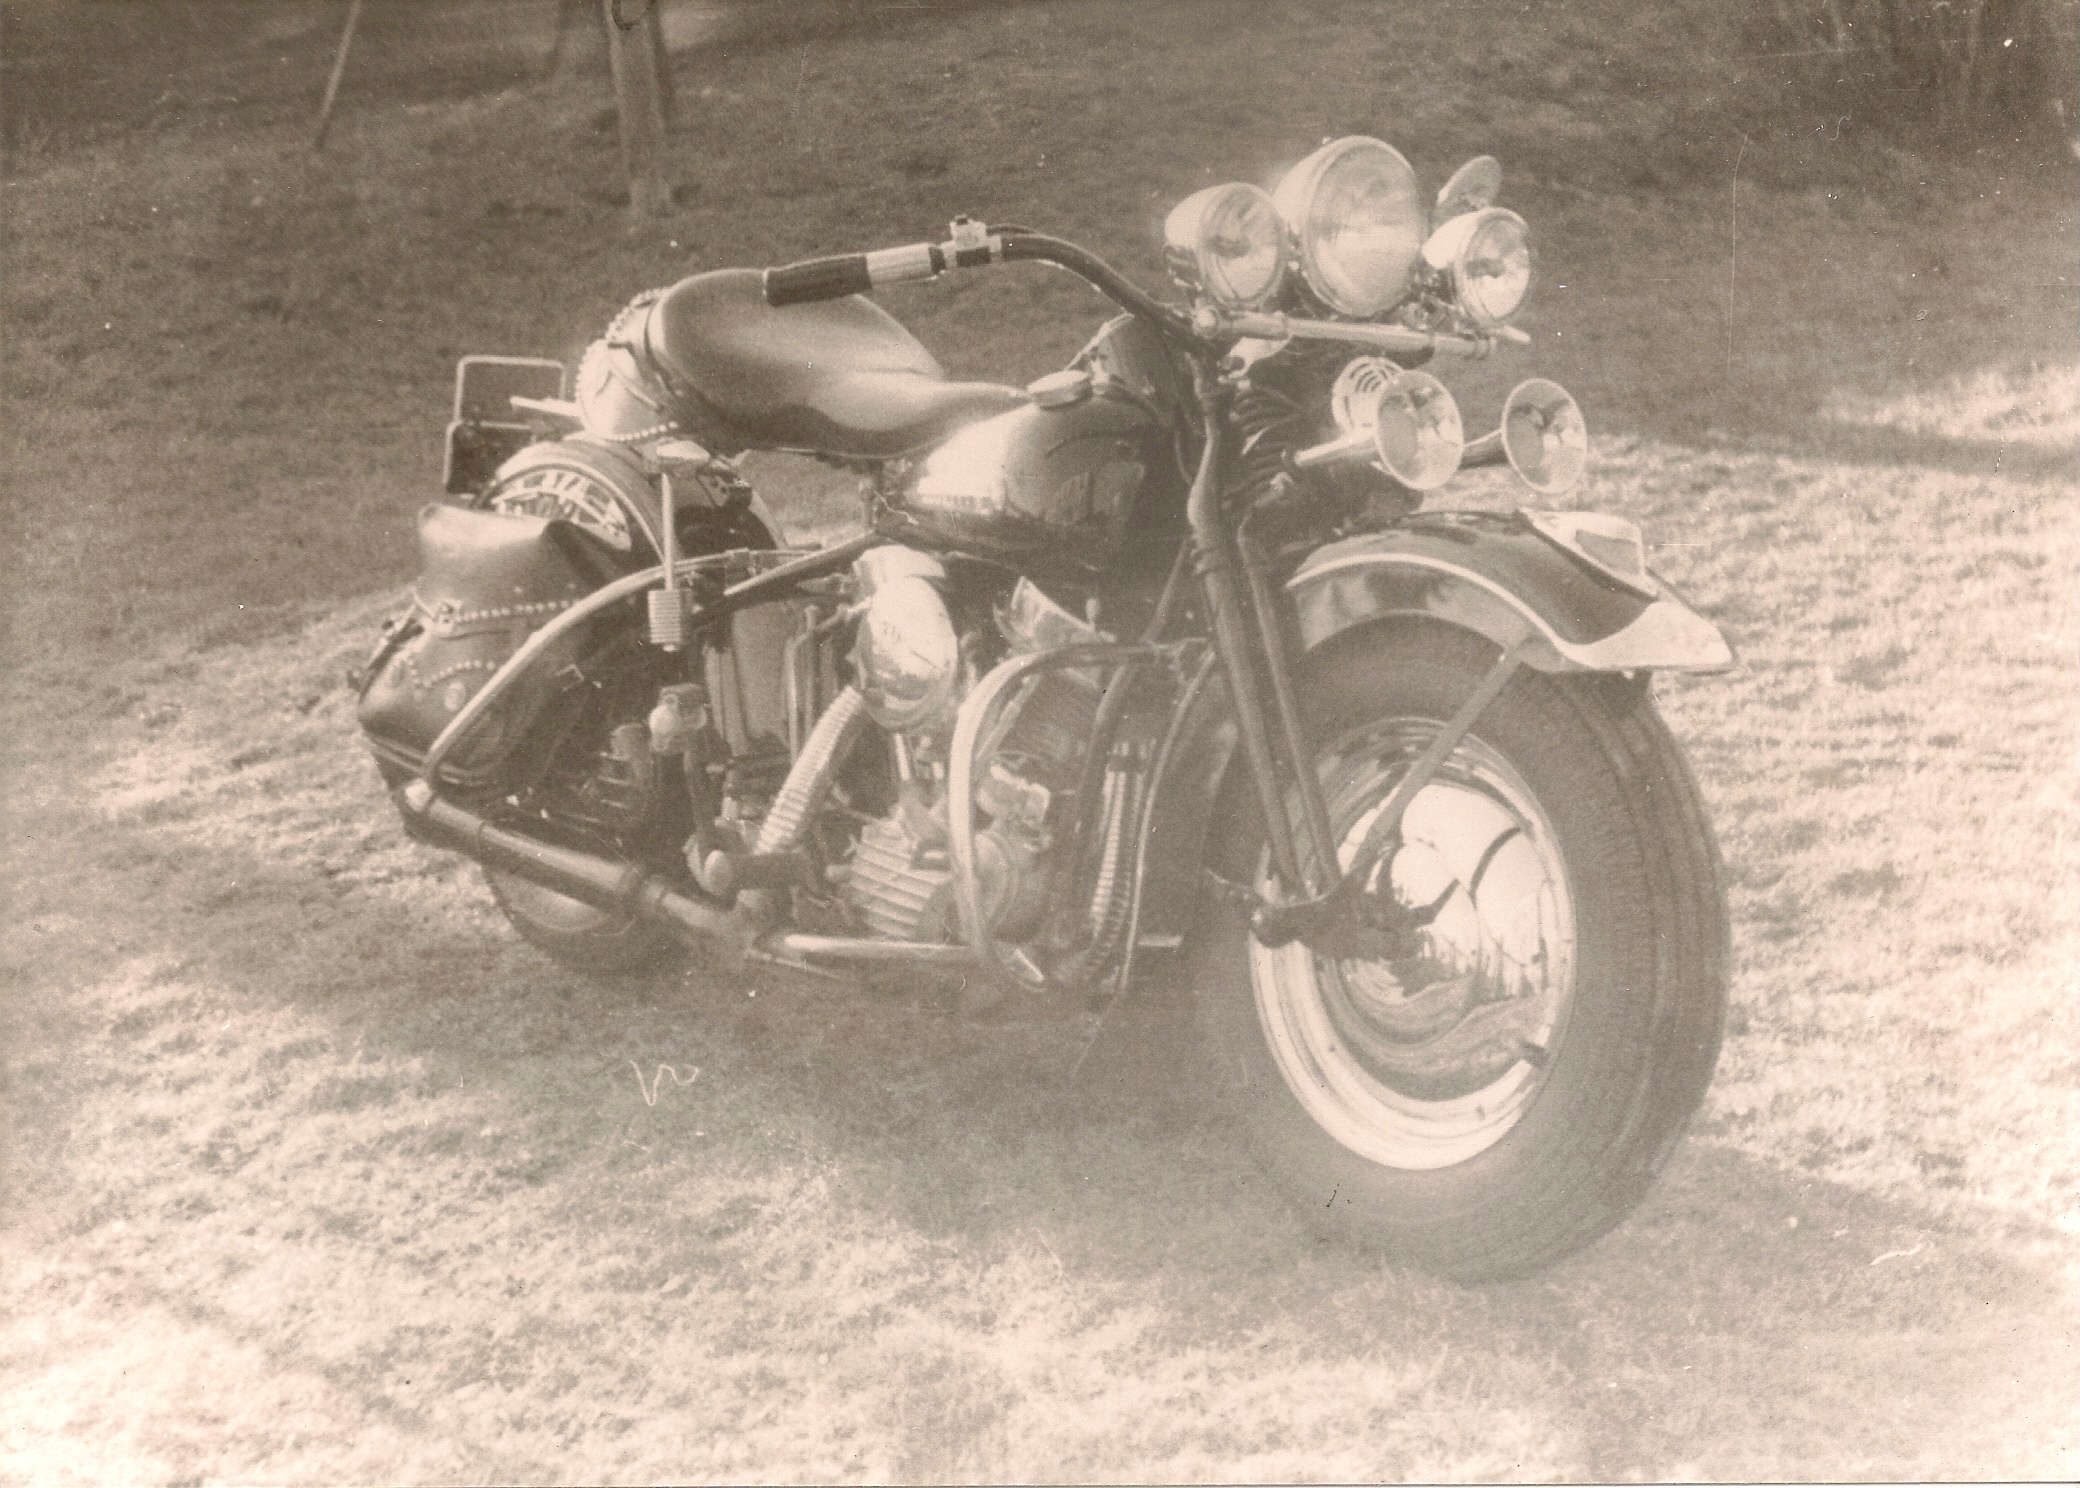 One of my late Uncle's Harleys